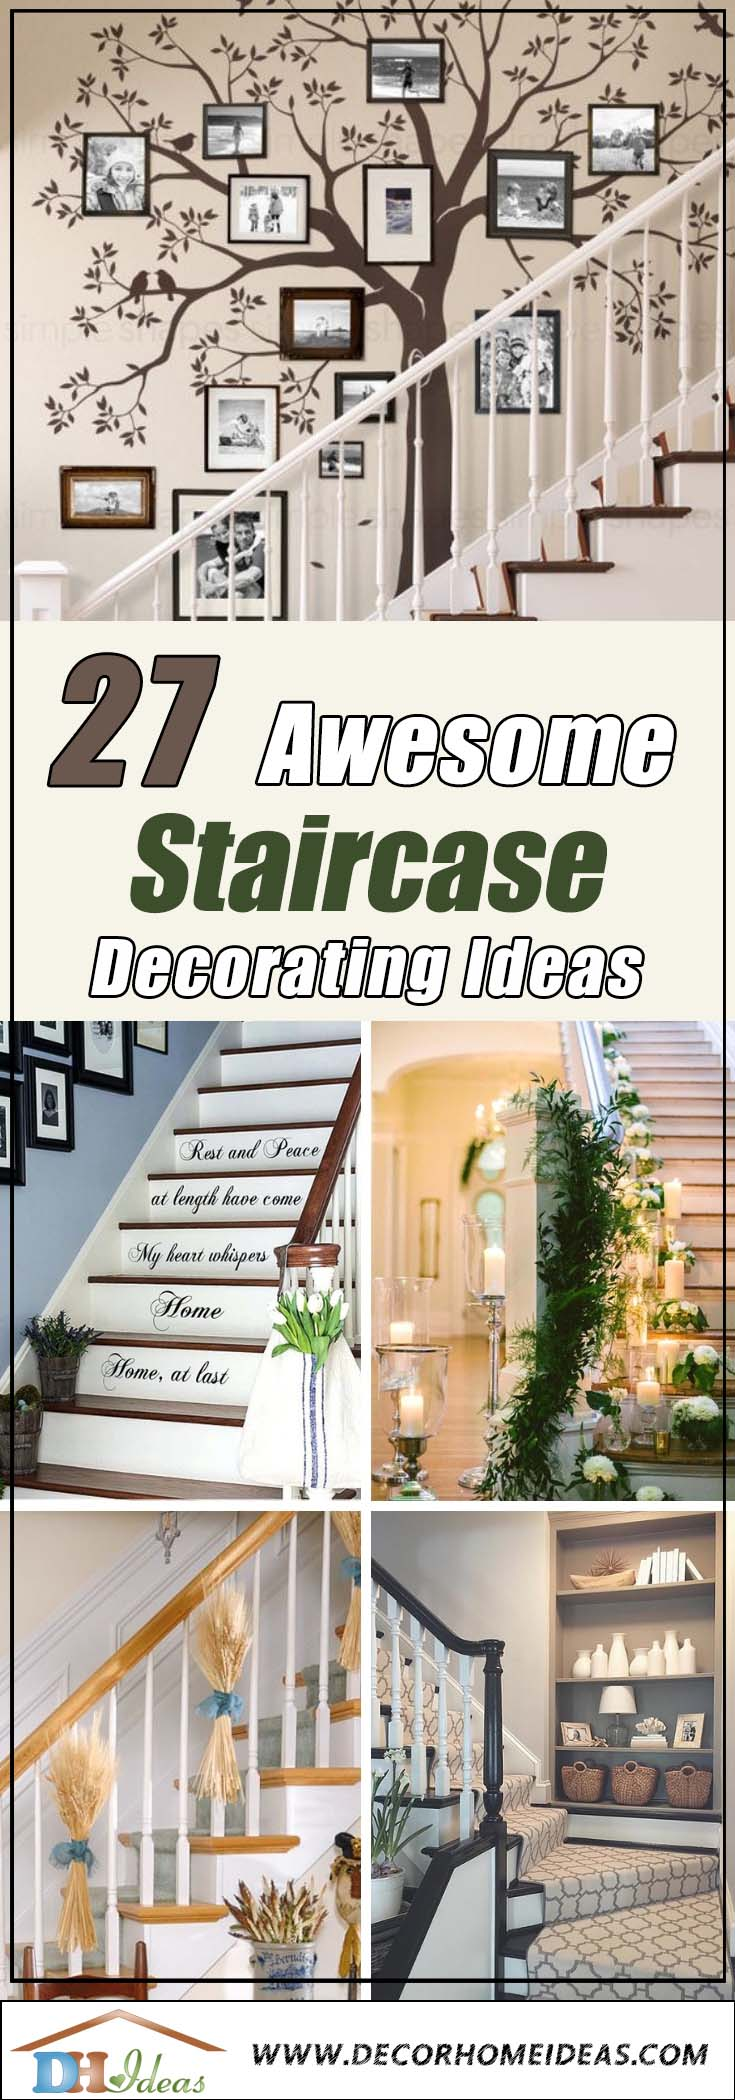 27 Awesome Stairs Decorating Ideas #staircase #stairs #stairway #stairsdecoration #homedecor #decorhomeideas